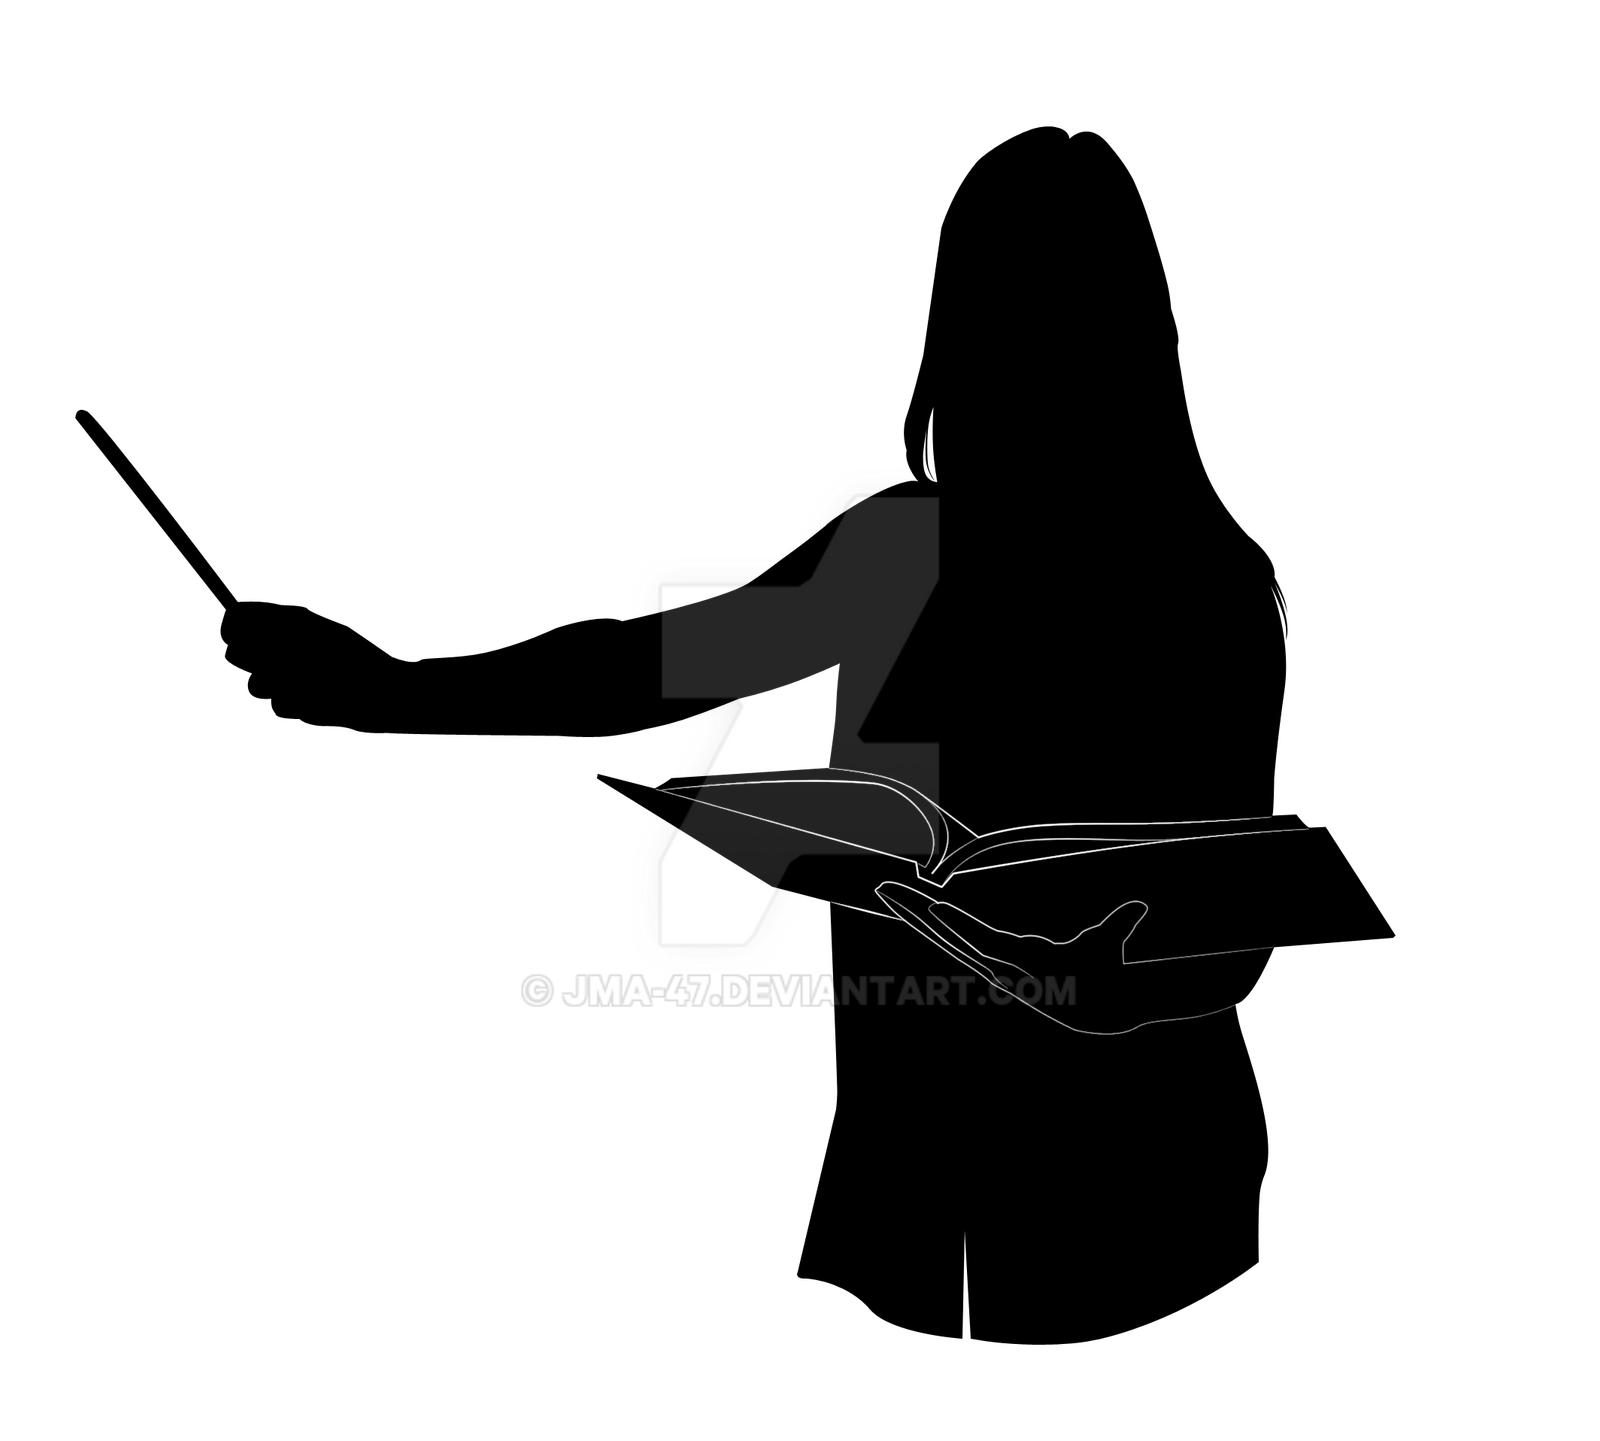 Free Silhouettes Clipart - Clip Art Pictures - Graphics - Illustrations